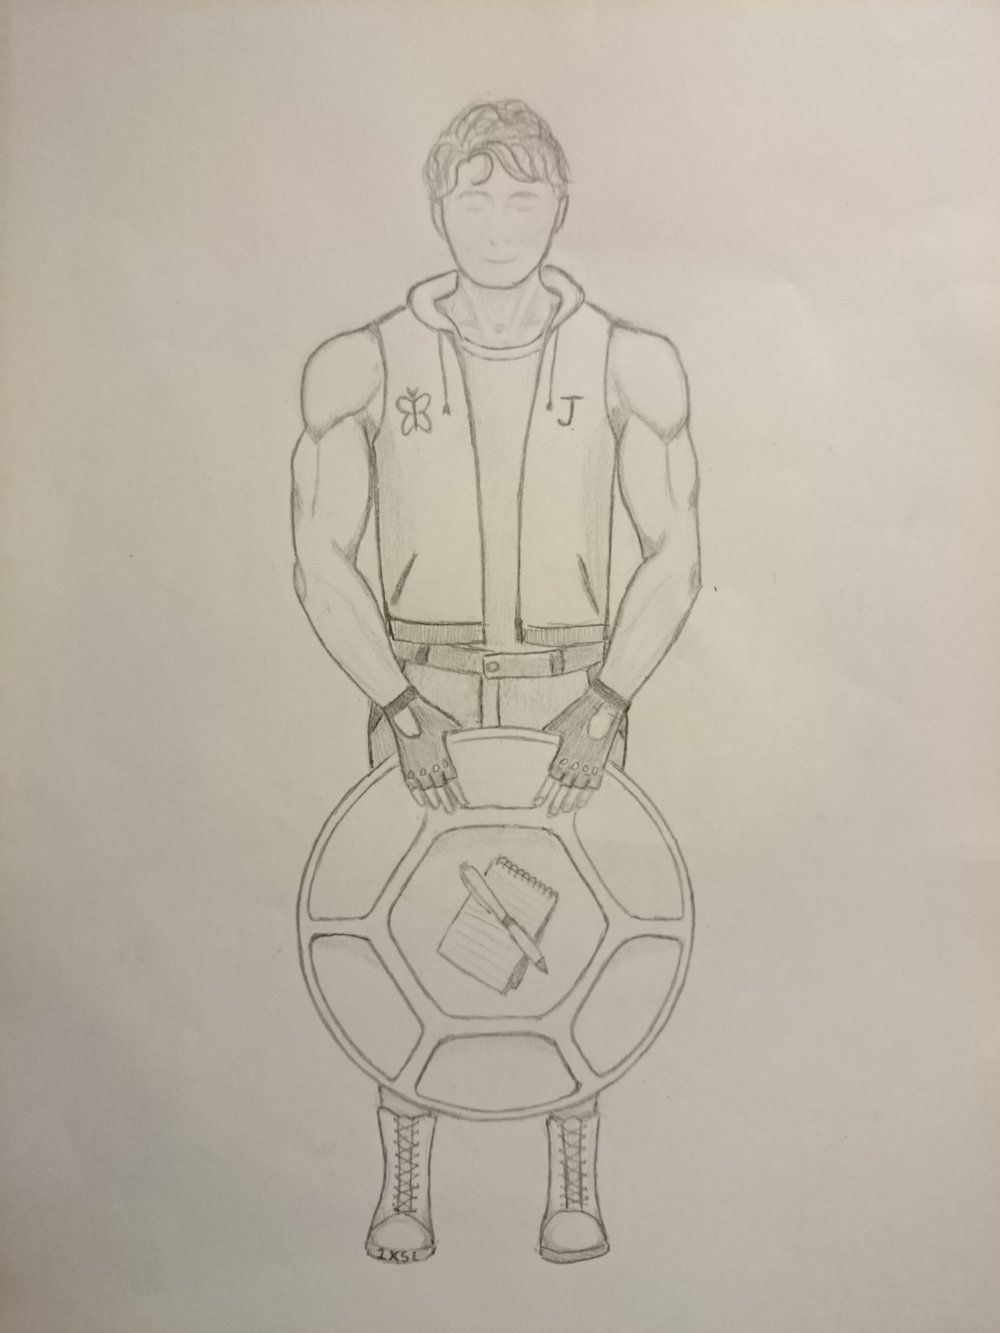 A full-body portrait by the wonderful teen artist LM, who depicts me in superhero gear: a sleeveless vest-style hoodie with a butterfly on one side and the initial J on the other; buff arms that I partially have and partially aspire to; workout-style gloves, loosely holding a turtle shell-patterned shield with a notebook and pen as the crest; and badass laced boots.